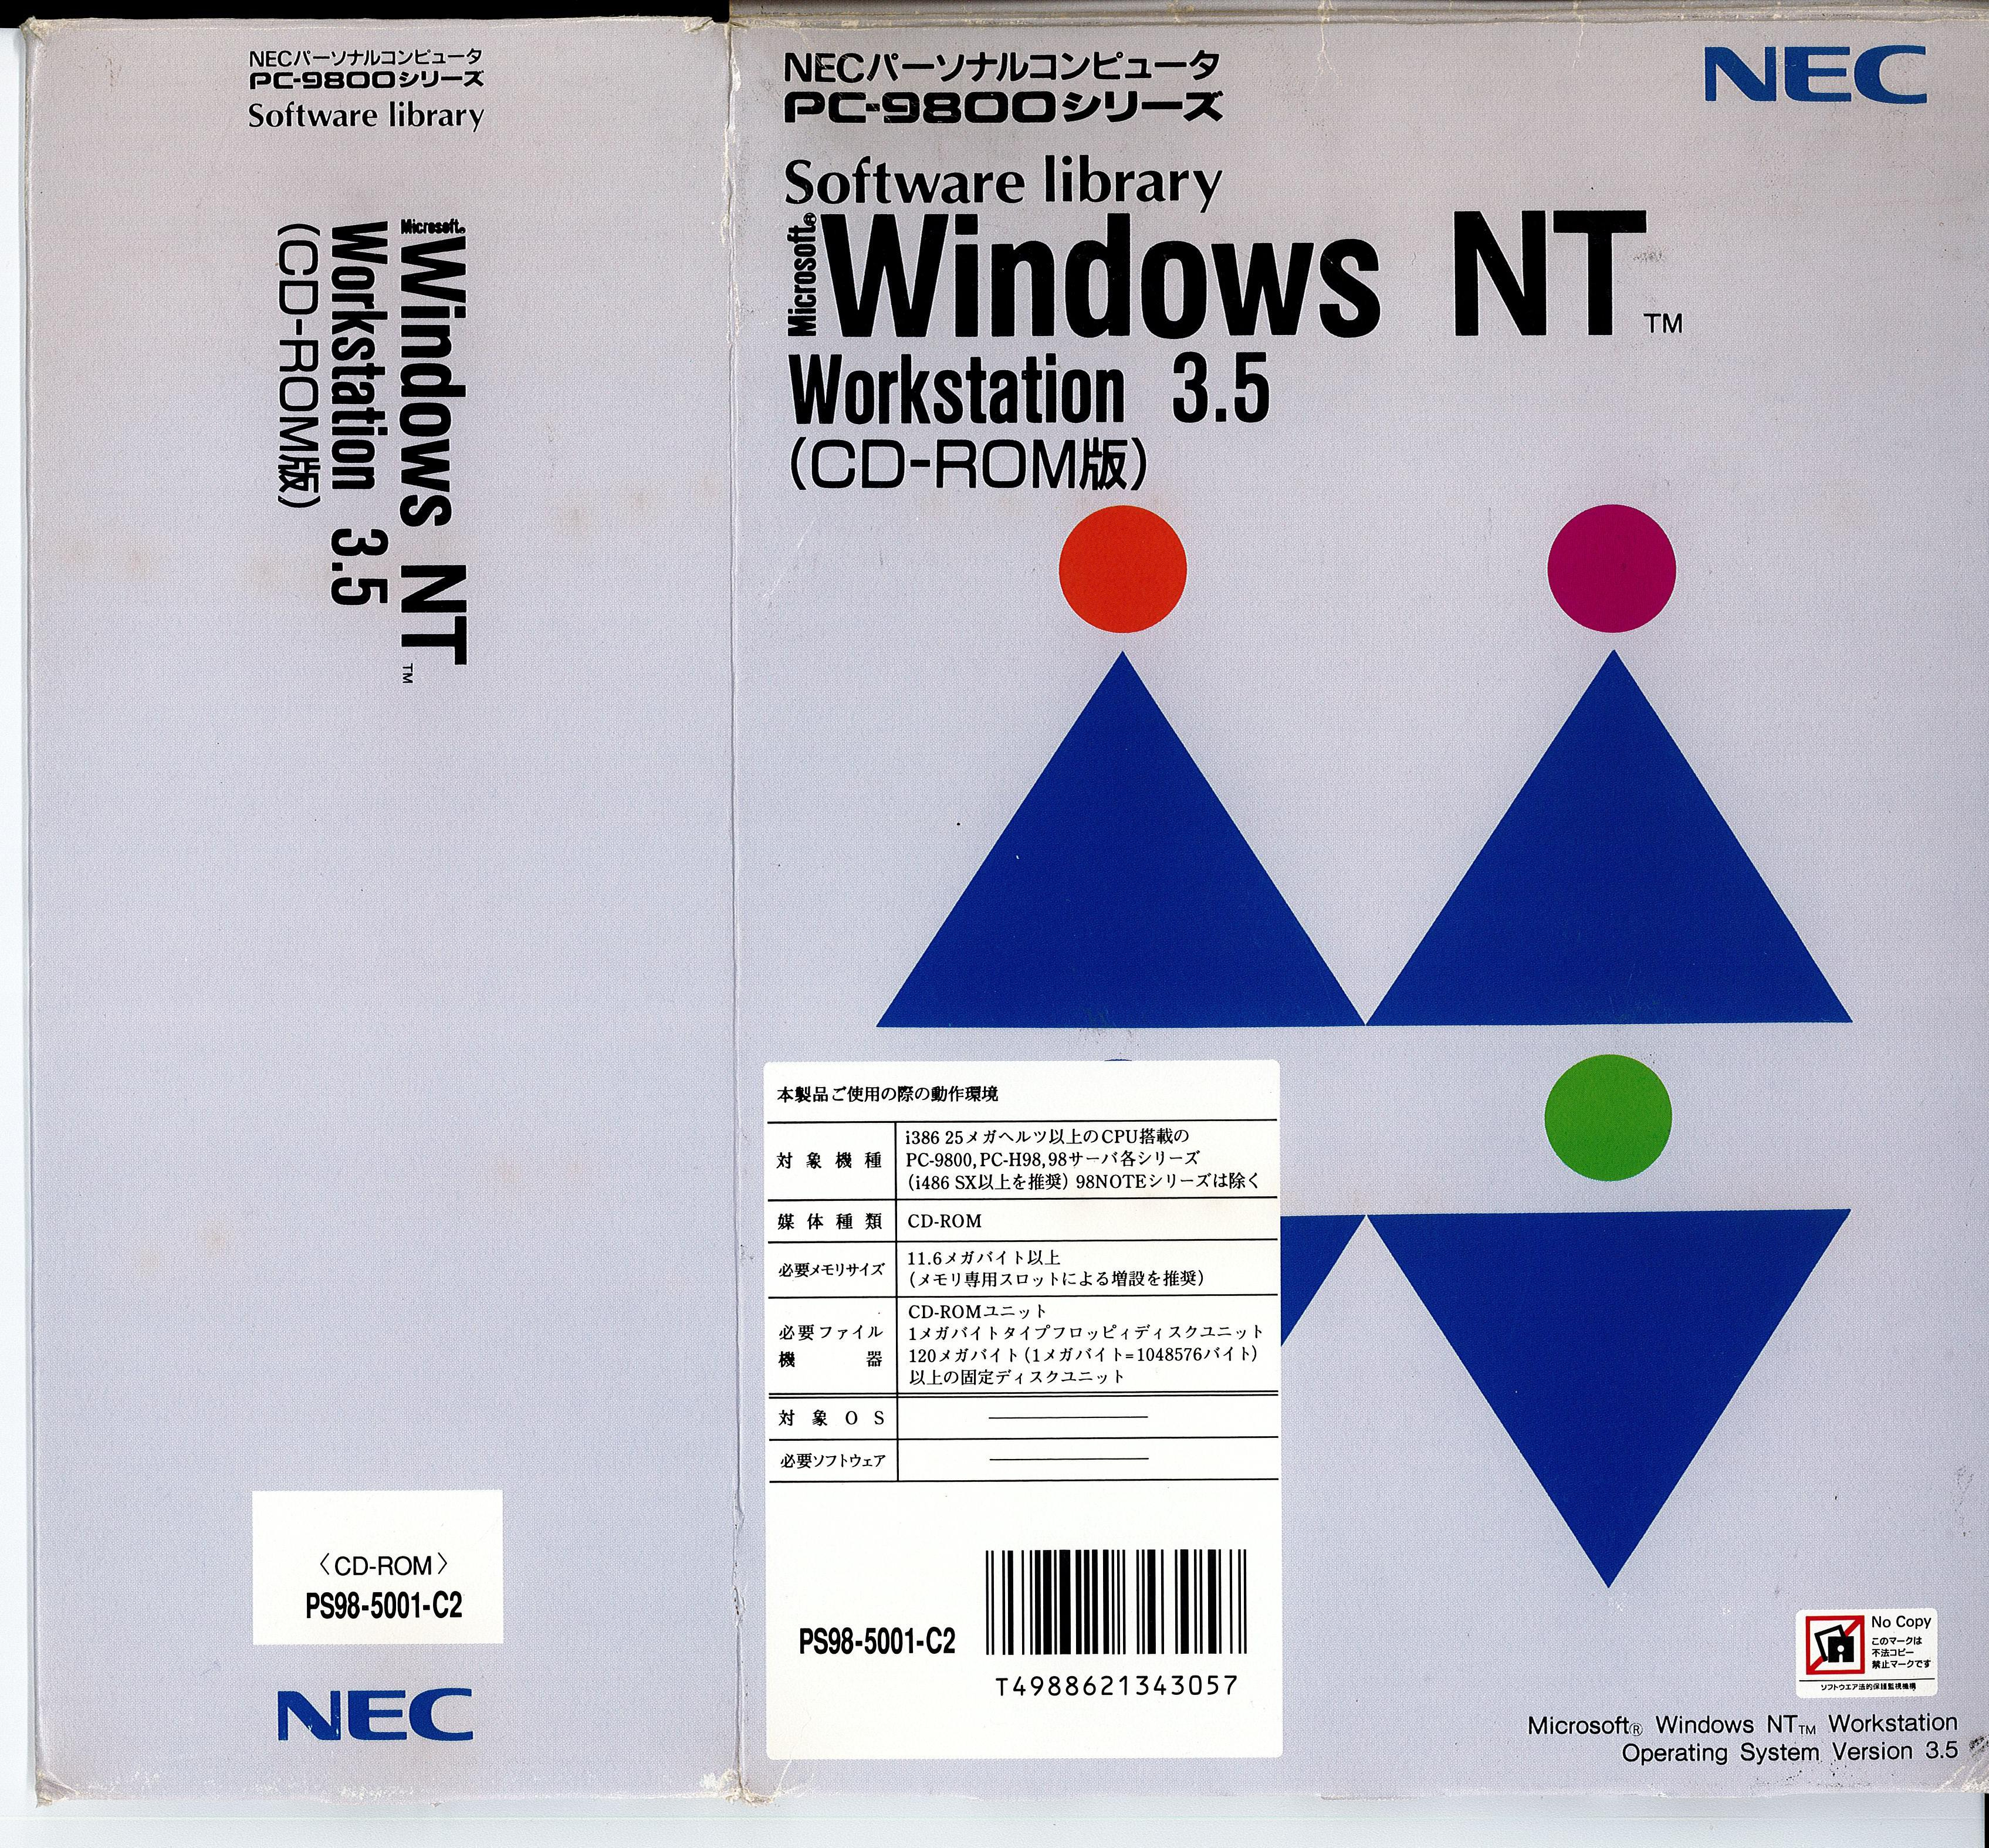 View topic - [OFFER] Windows NT 3 5 Workstation [NEC PC-98xx] [NEC